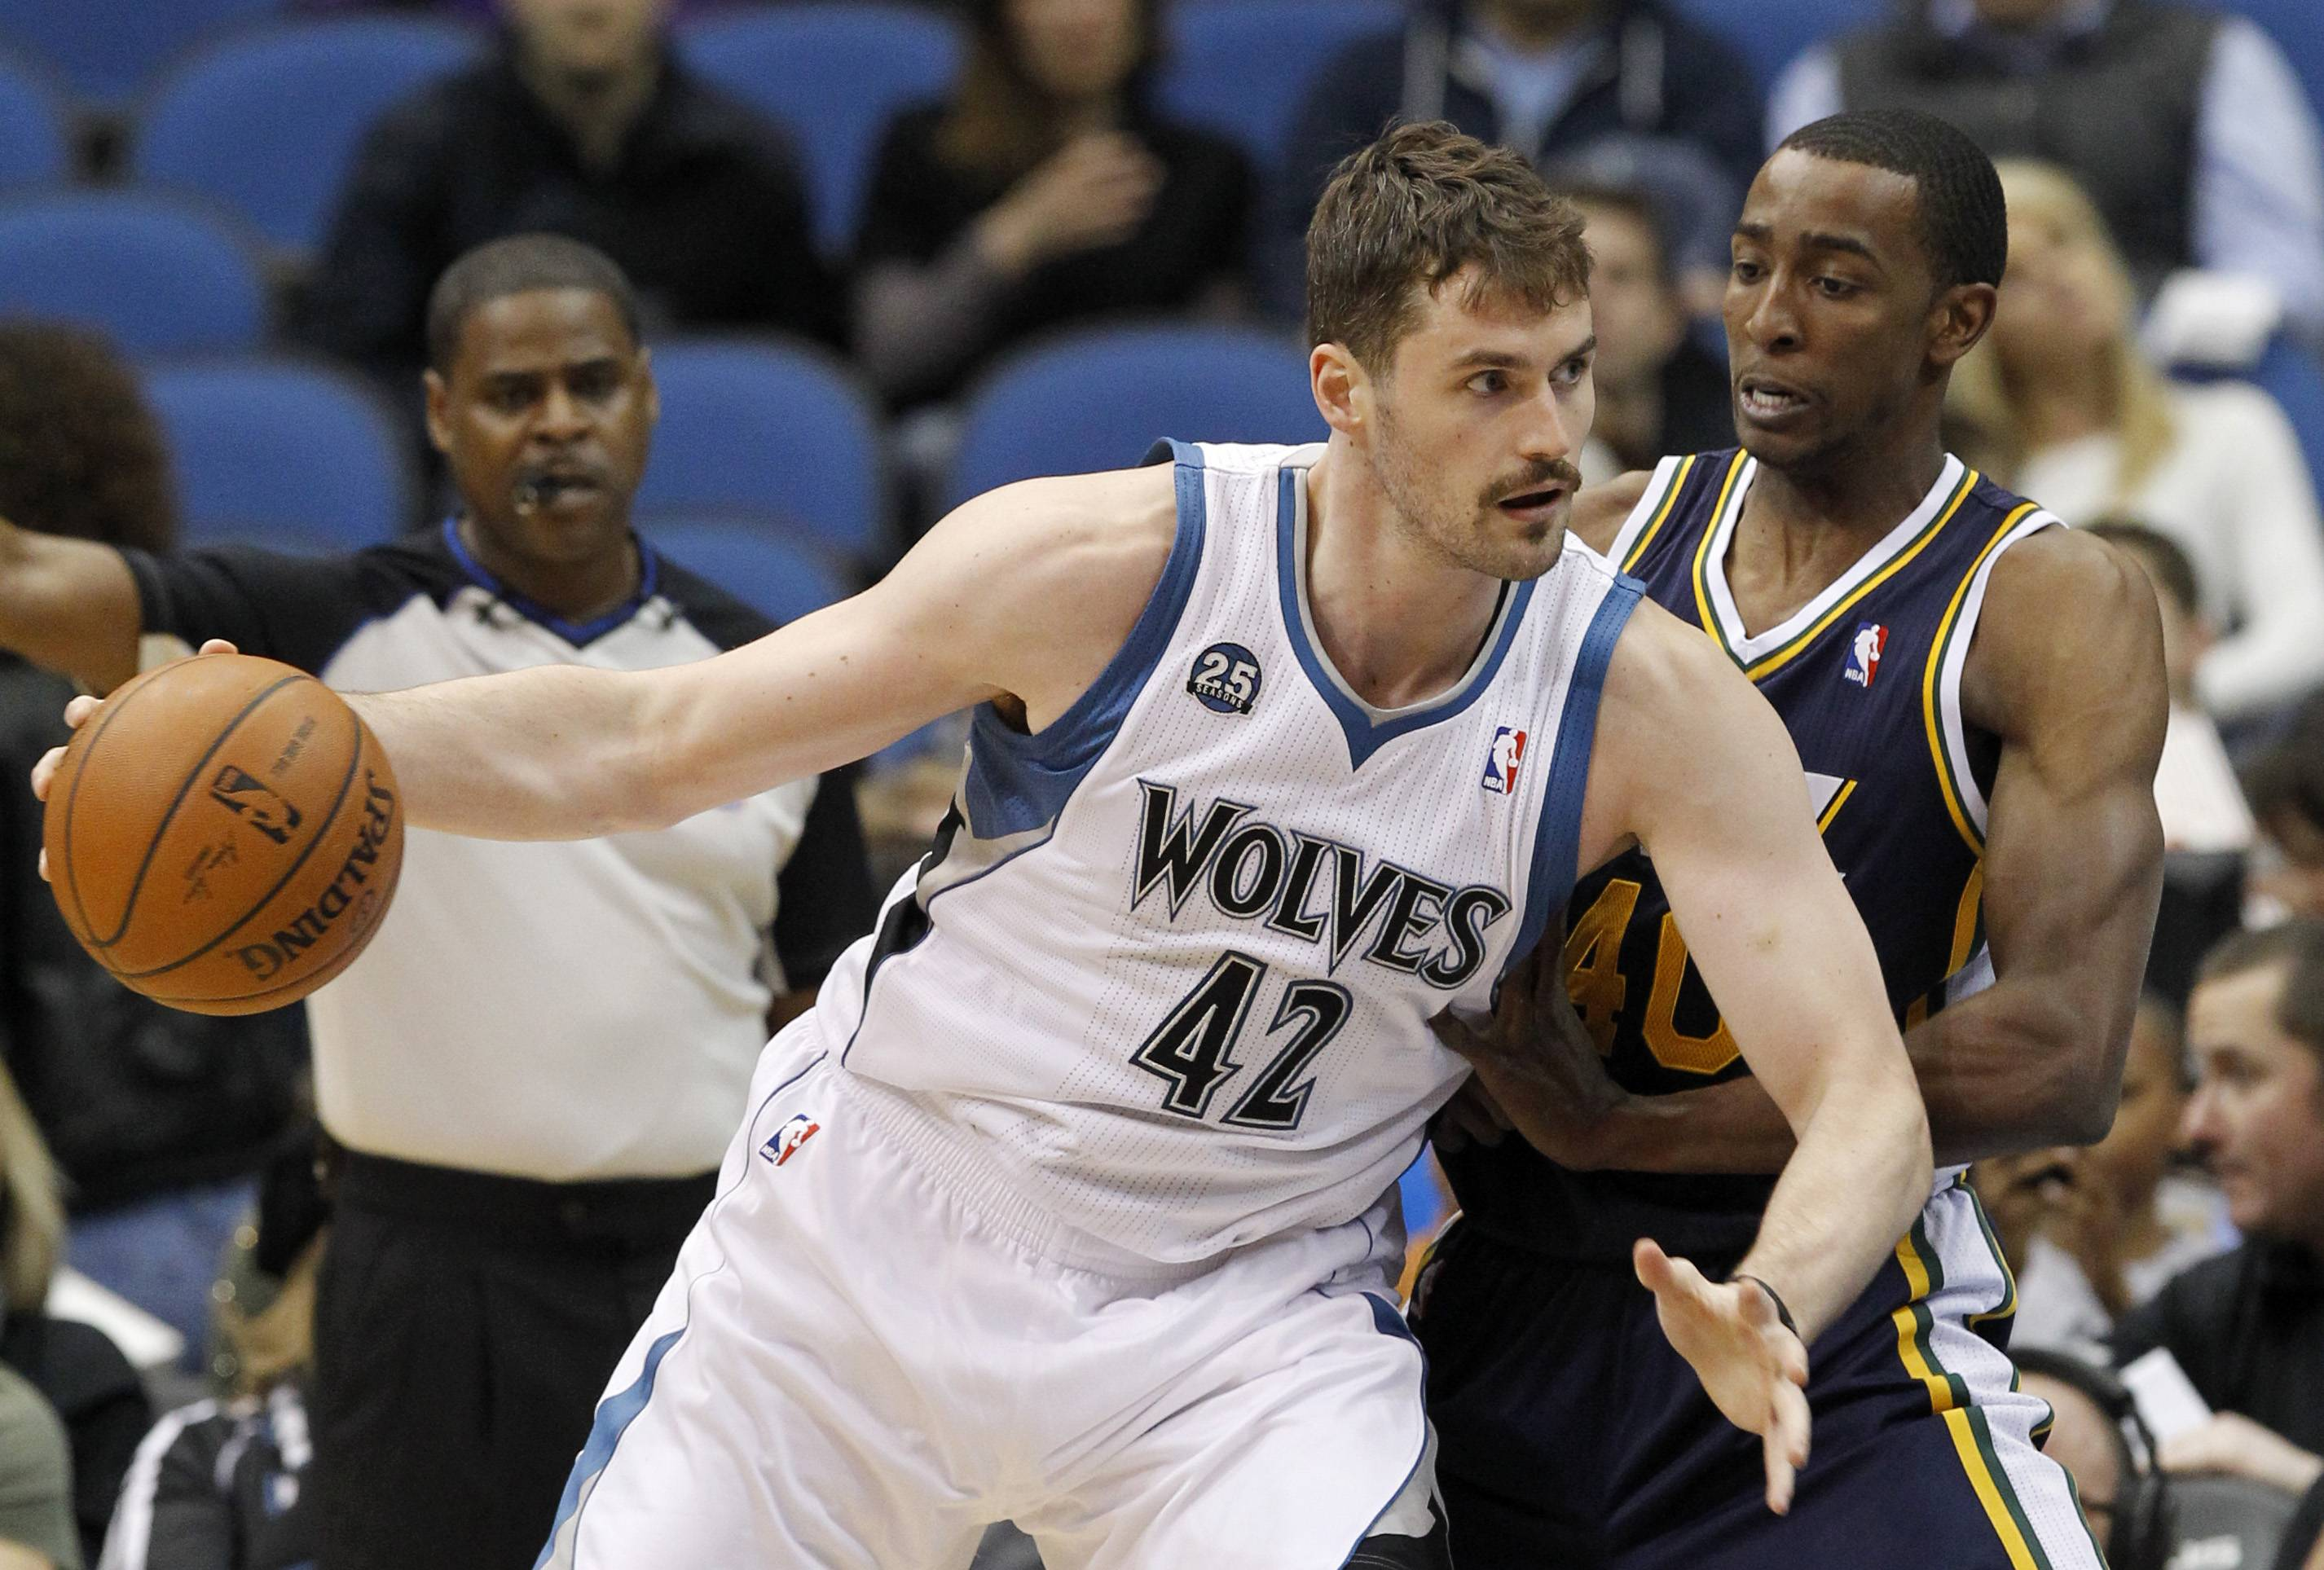 A deal is in place for Minnesota Timberwolves forward Kevin Love (42) to join LeBron James in Cleveland. The Cavaliers will give up Andrew Wiggins, Anthony Bennett and a future first-round draft pick for Love.